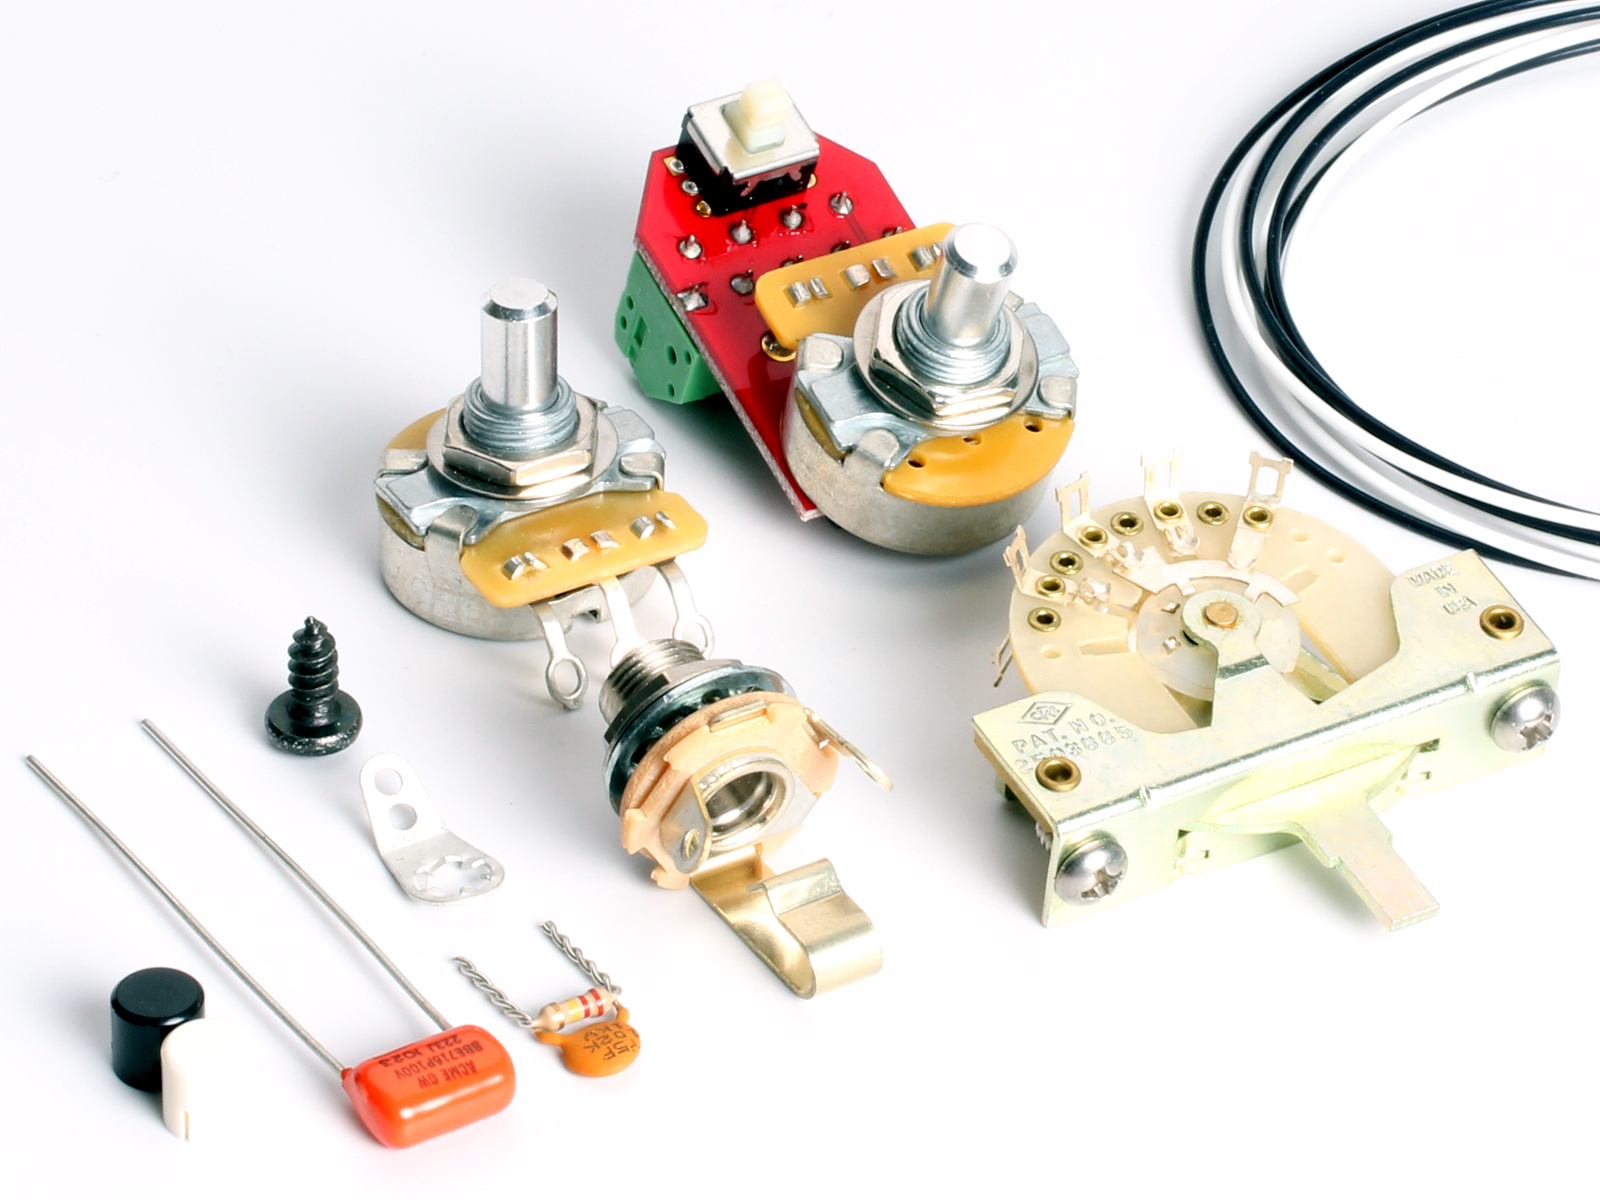 hight resolution of toneshapers wiring kit telecaster hh4 green machine gibson wiring kits click on